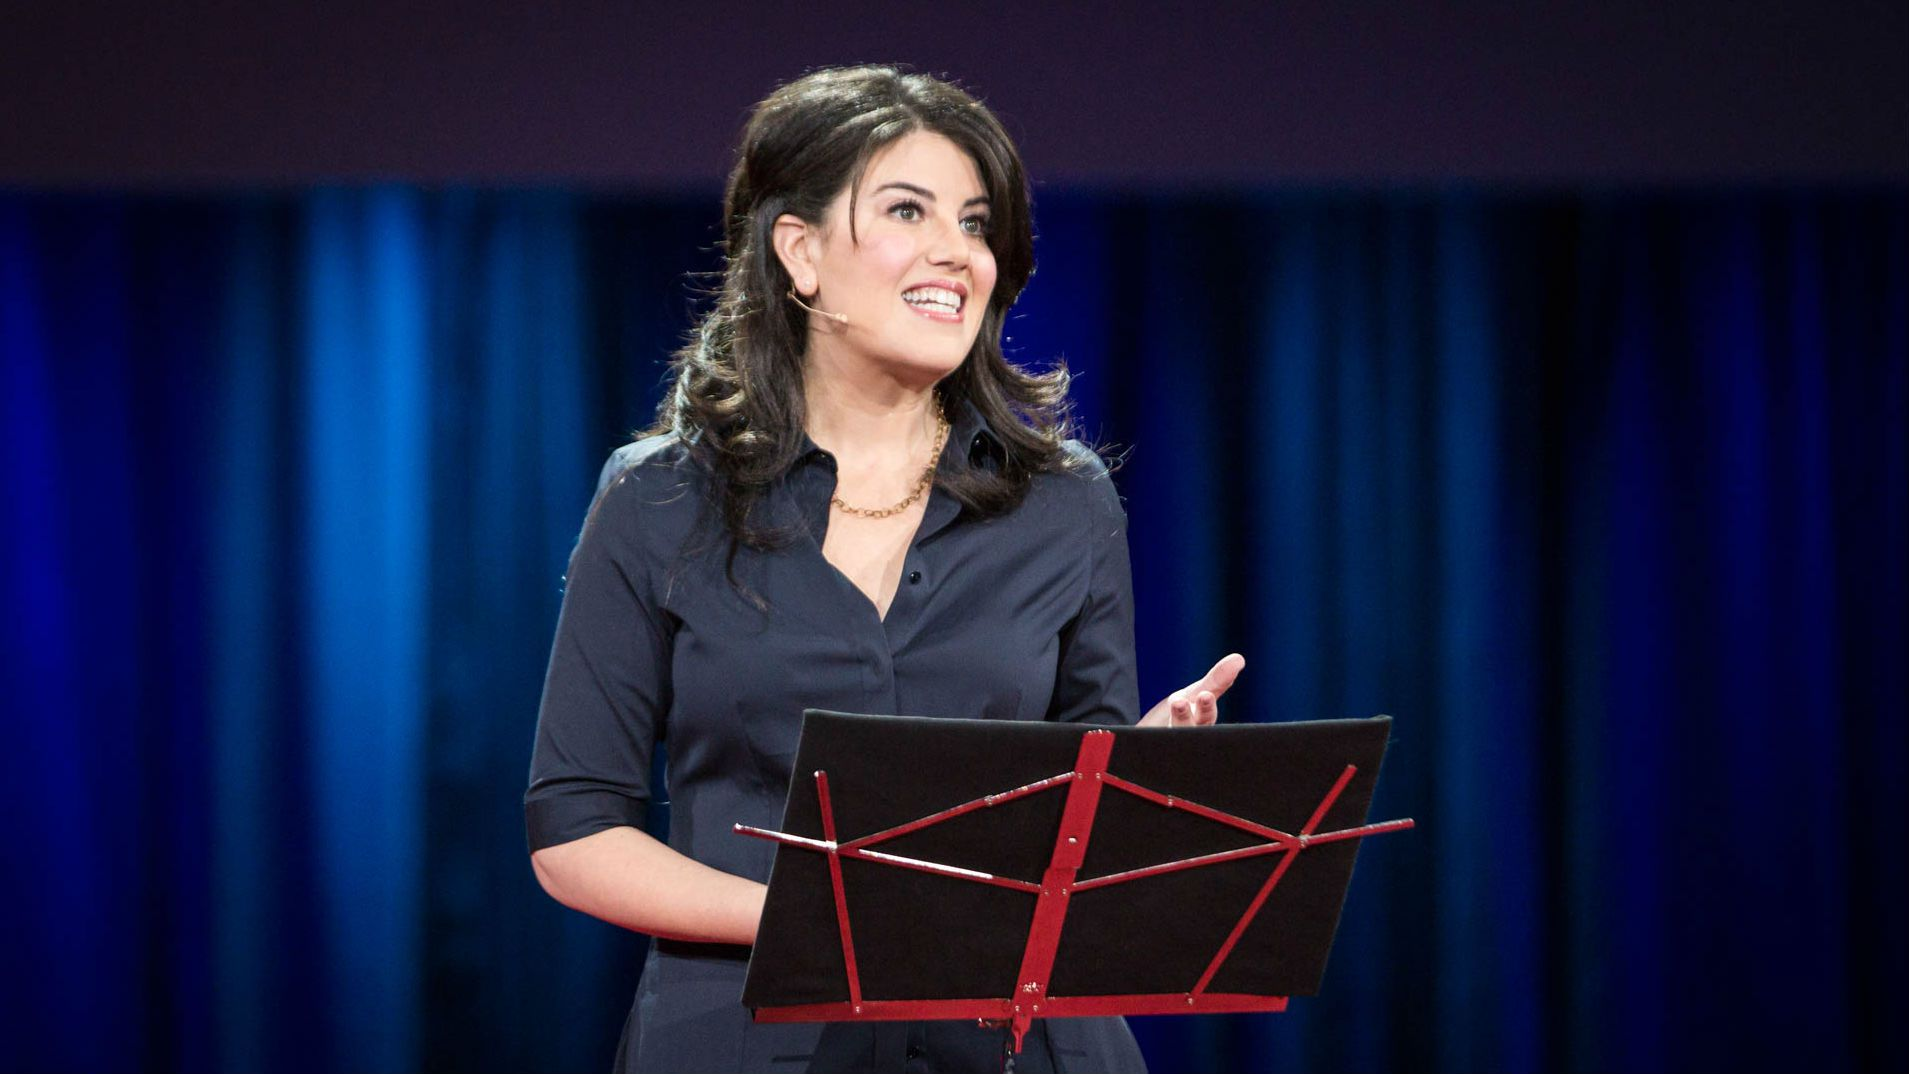 Monica Lewinsky at TED